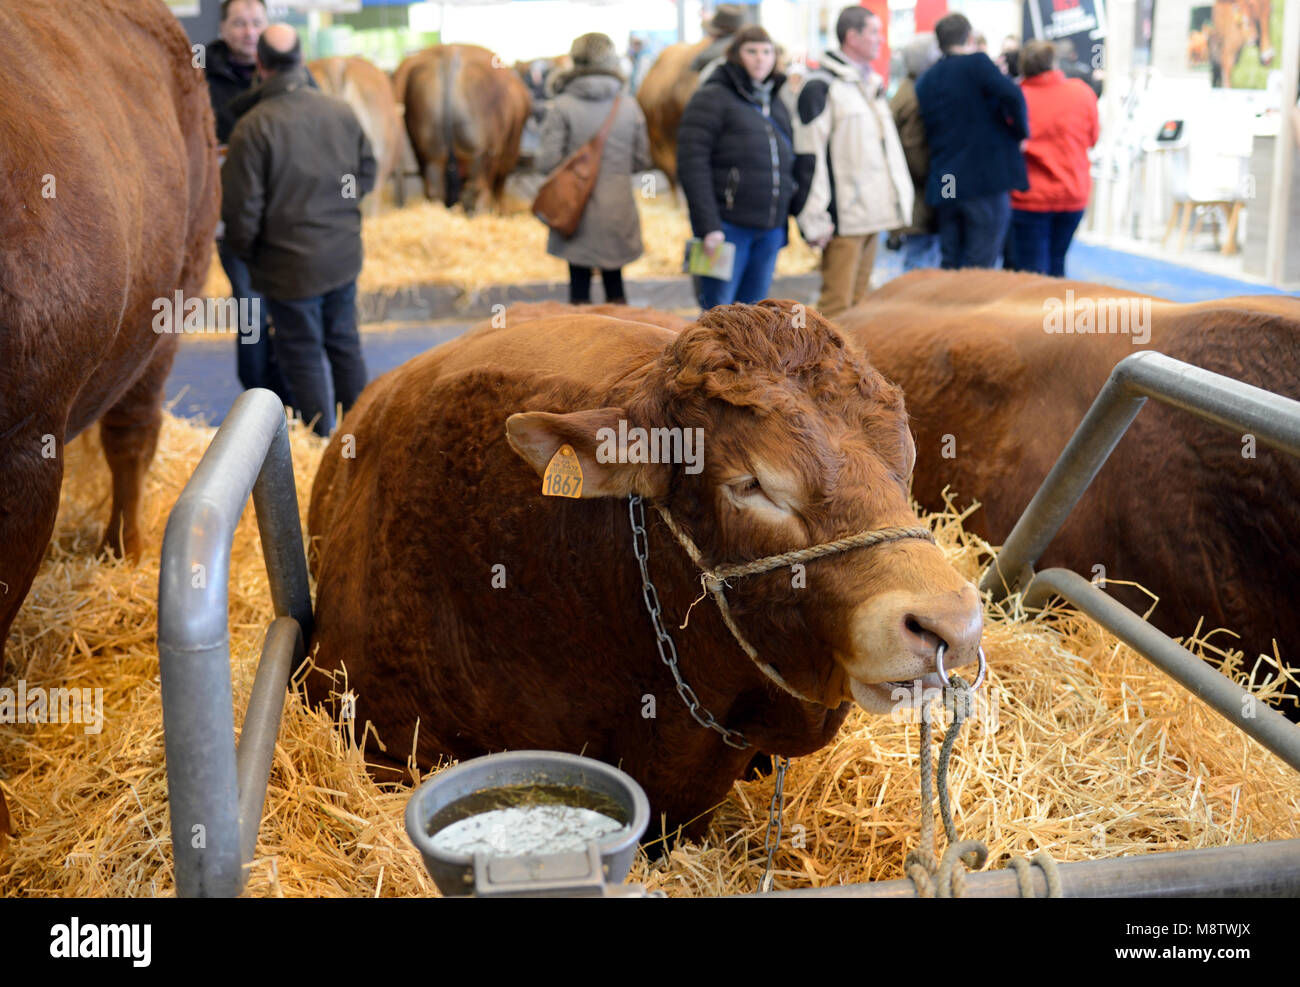 Limousin Beef Cattle and Visitors at the Paris International Agricultural Show, or Salon International de l'Agriculture, - Stock Image